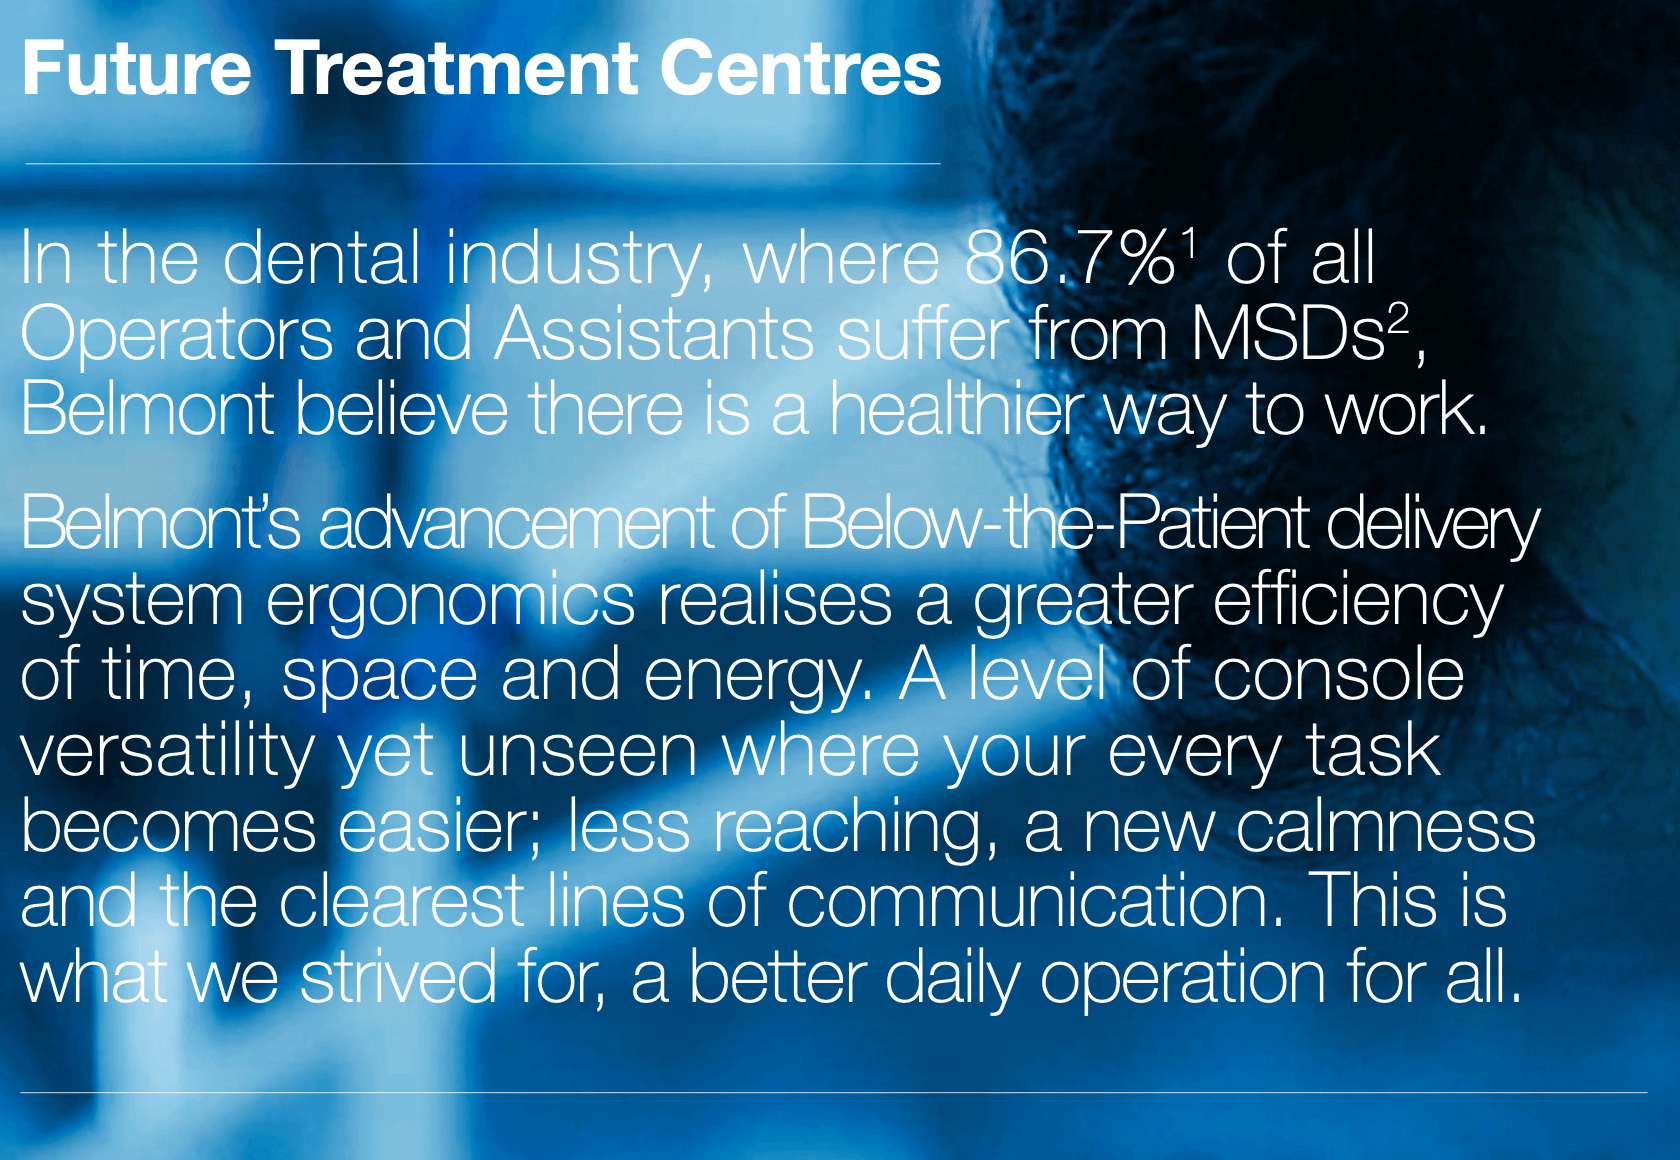 Future Treatment centres info